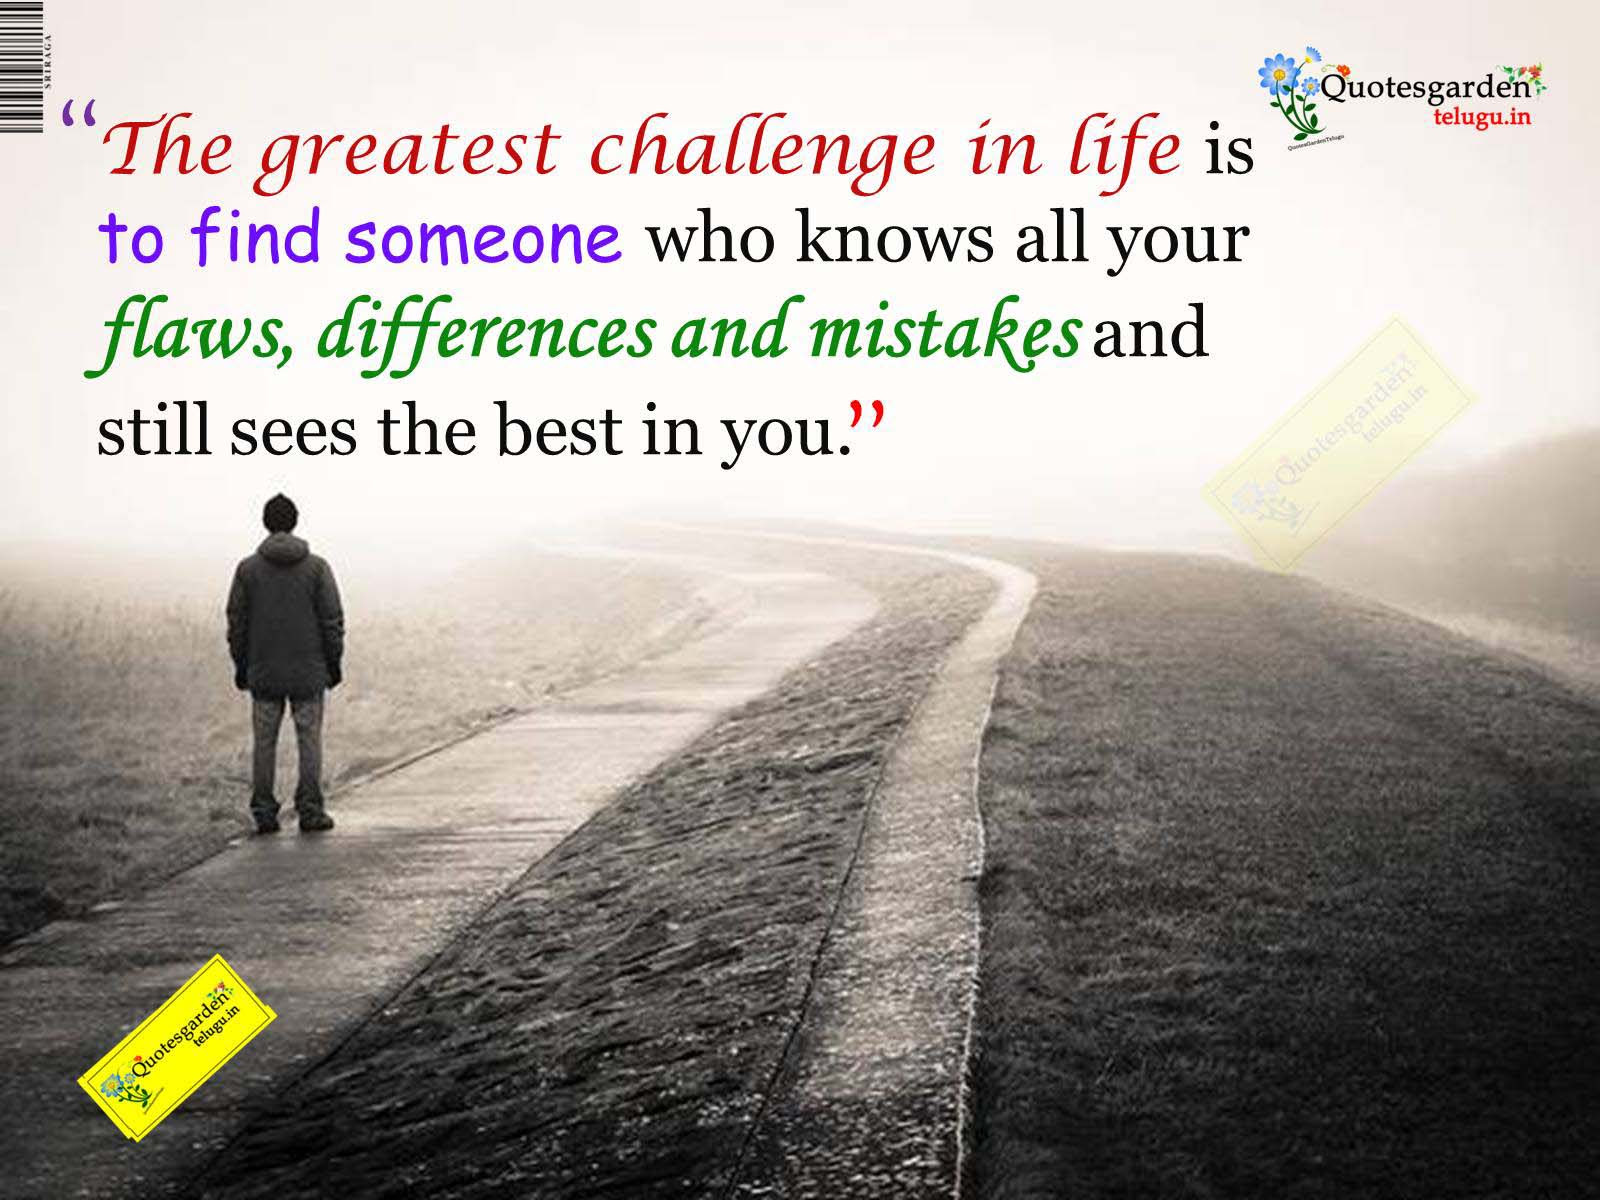 Heart Touching Wallpaper With Quotes In Malayalam Awesome Quotes A